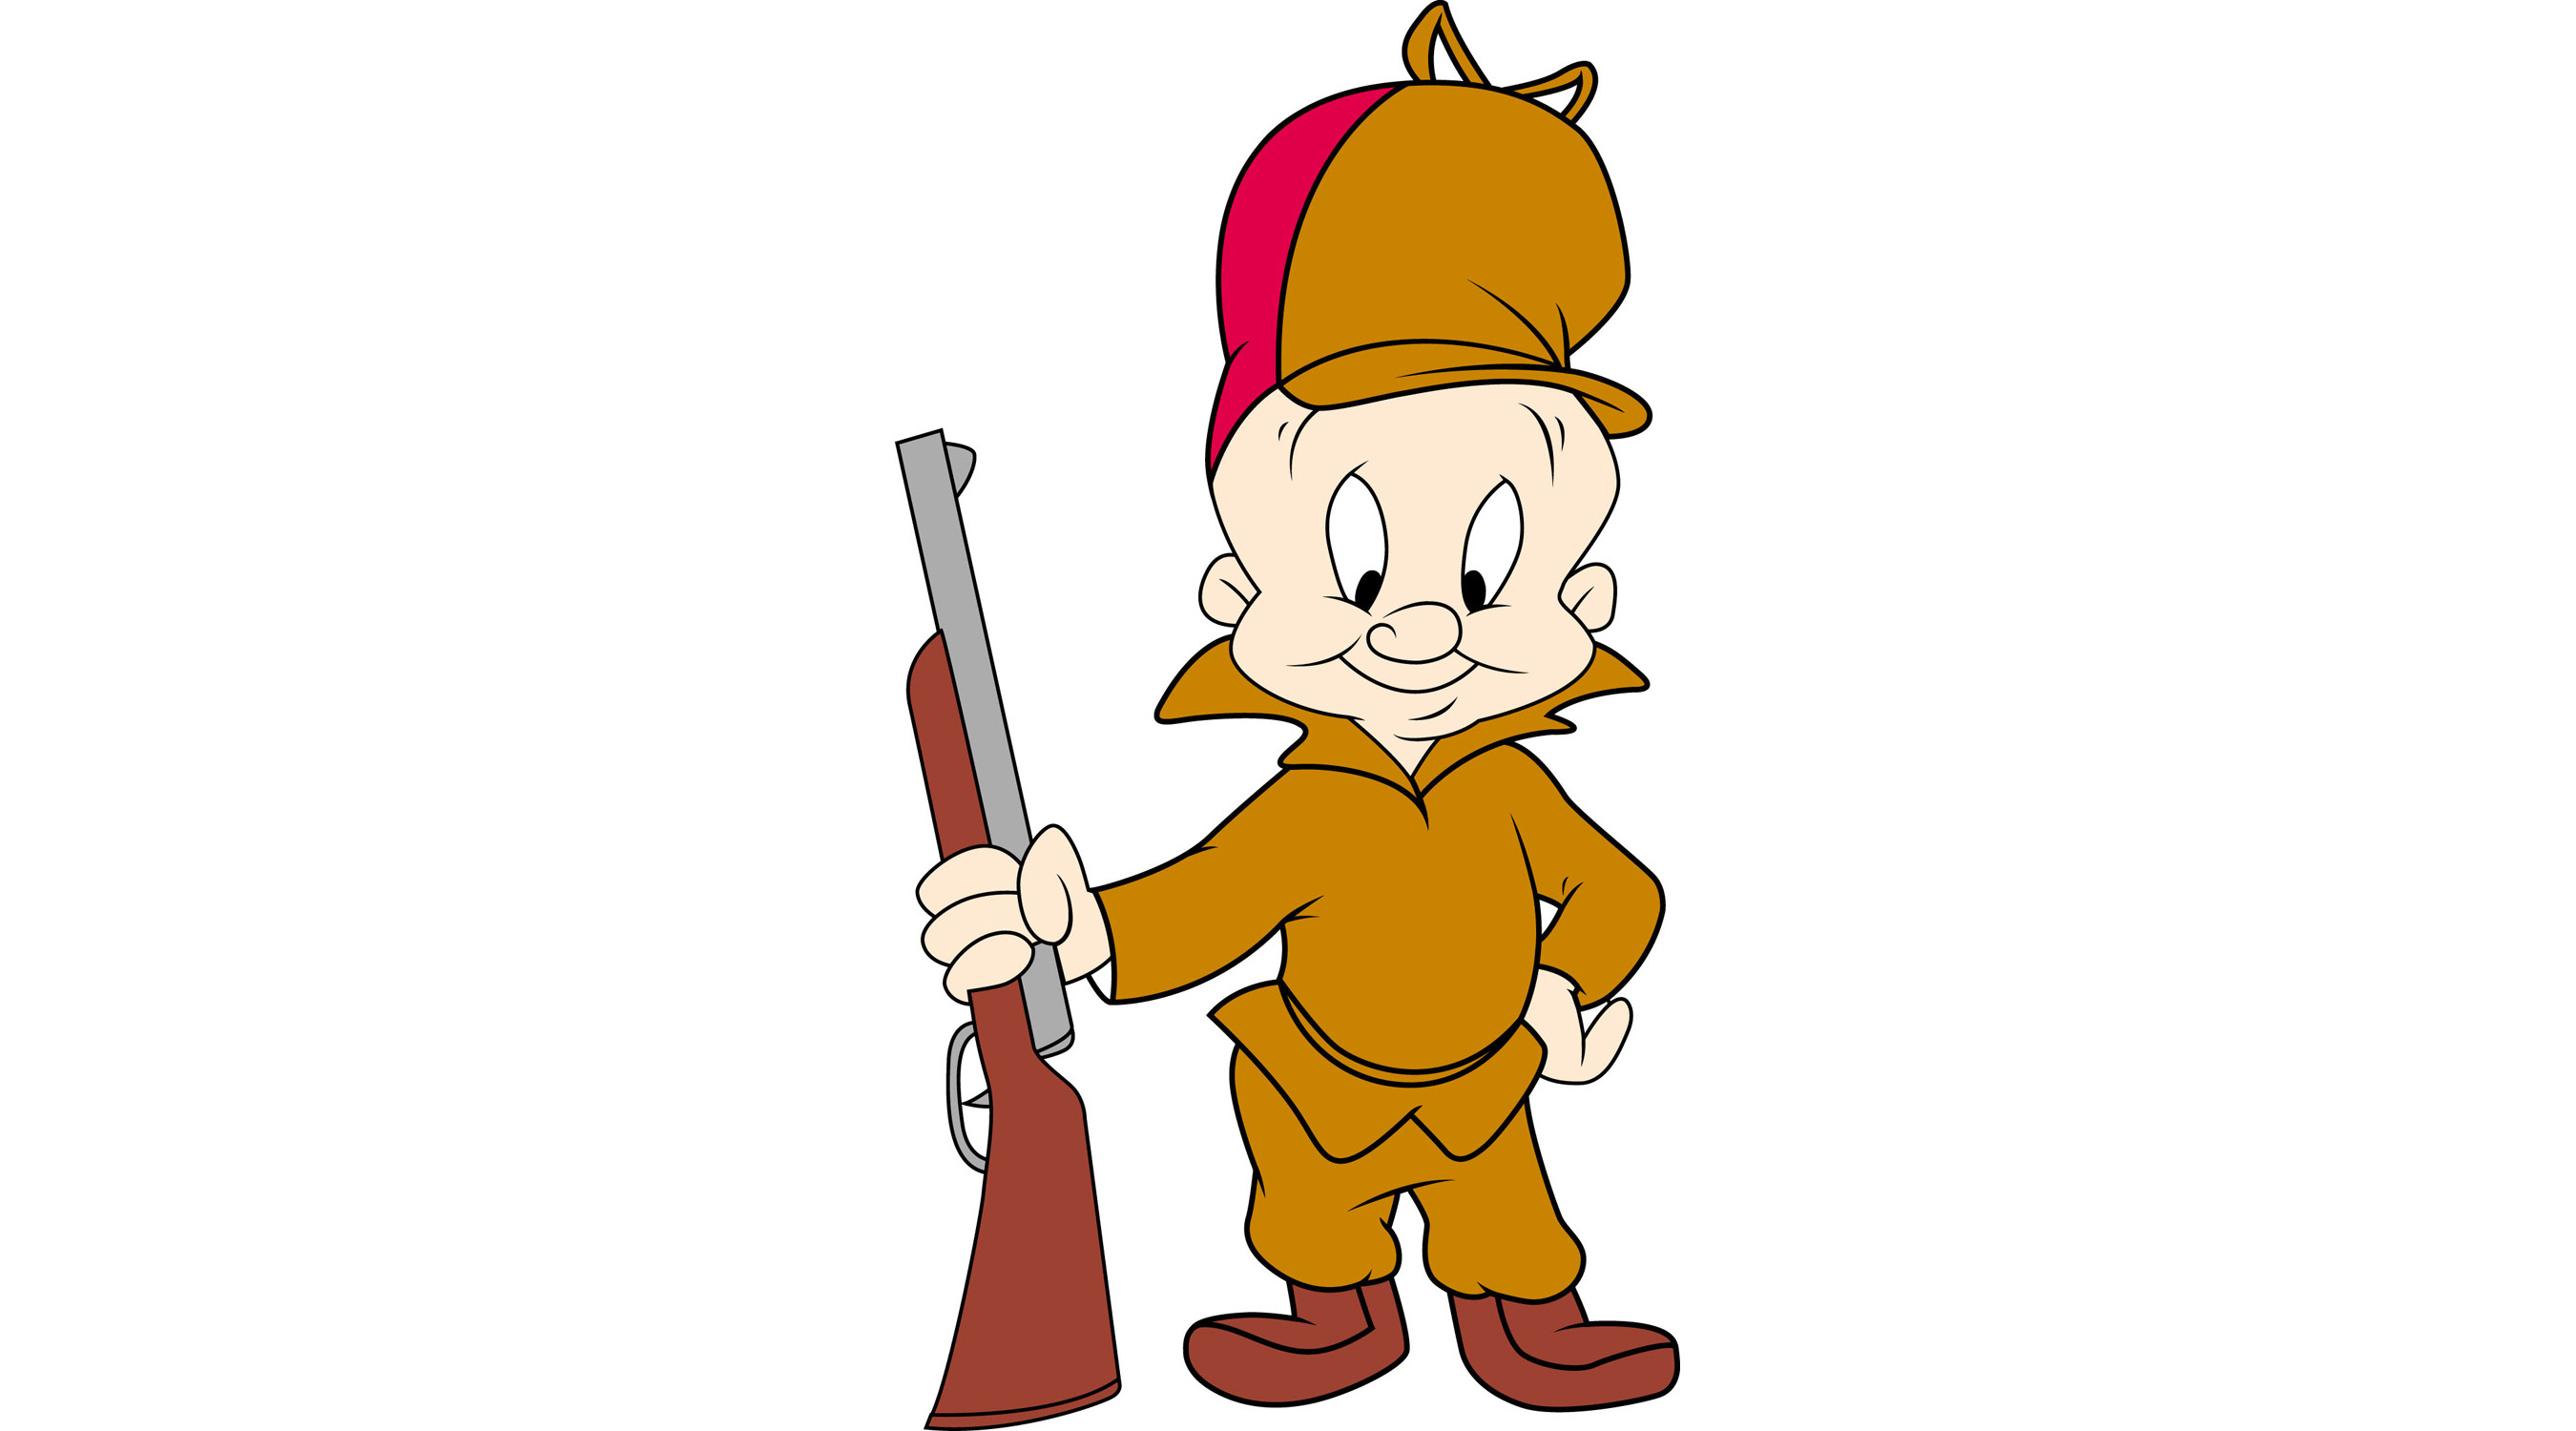 Elmer Fudd Backgrounds on Wallpapers Vista